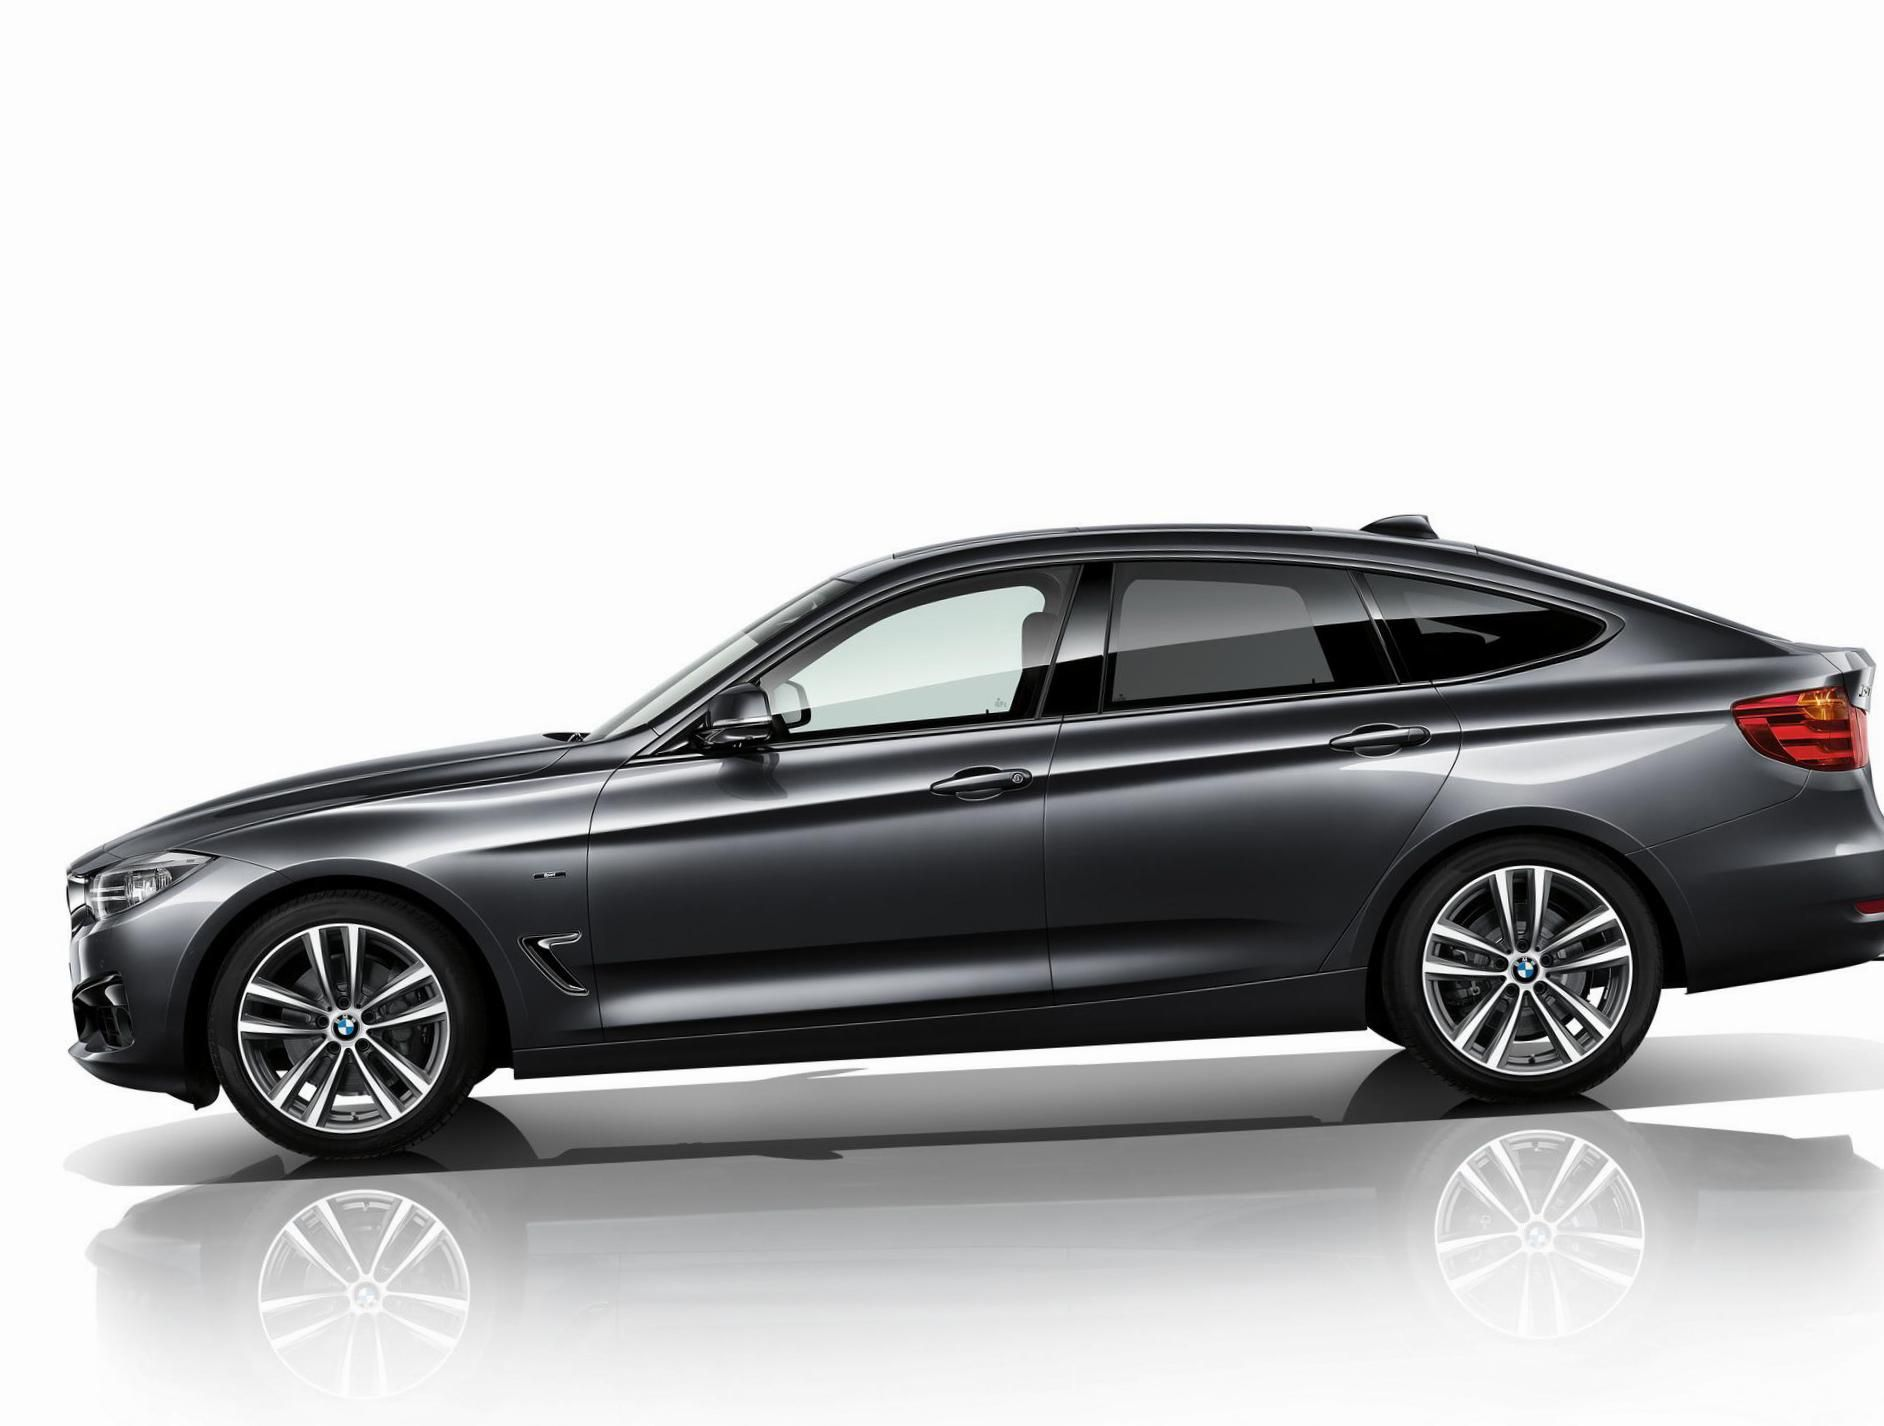 Bmw 3 Series Gran Turismo F34 Photos And Specs Photo Bmw 3 Series Gran Turismo F34 Parts And 25 Perfect Photos Of Bmw 3 Ser Bmw Bmw 3 Series Concept Cars